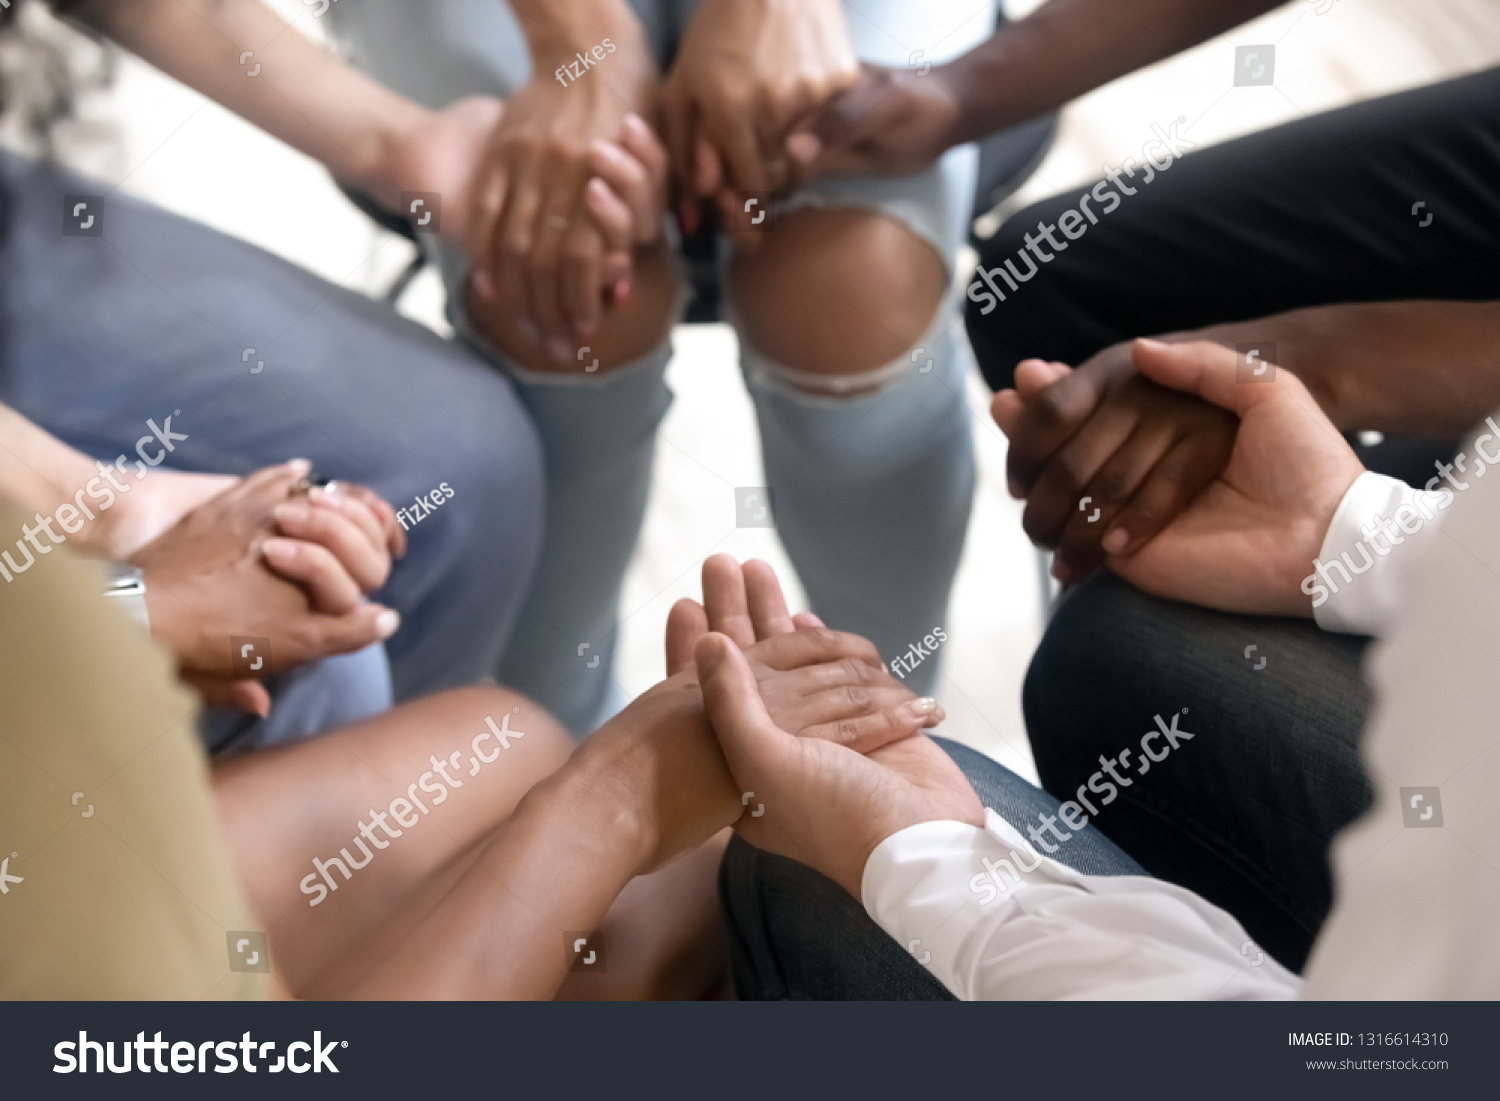 Diverse people sitting in circle holding hands at group therapy session, religious christian team pray together for recovery give psychological support, counseling training trust concept, close up #1316614310